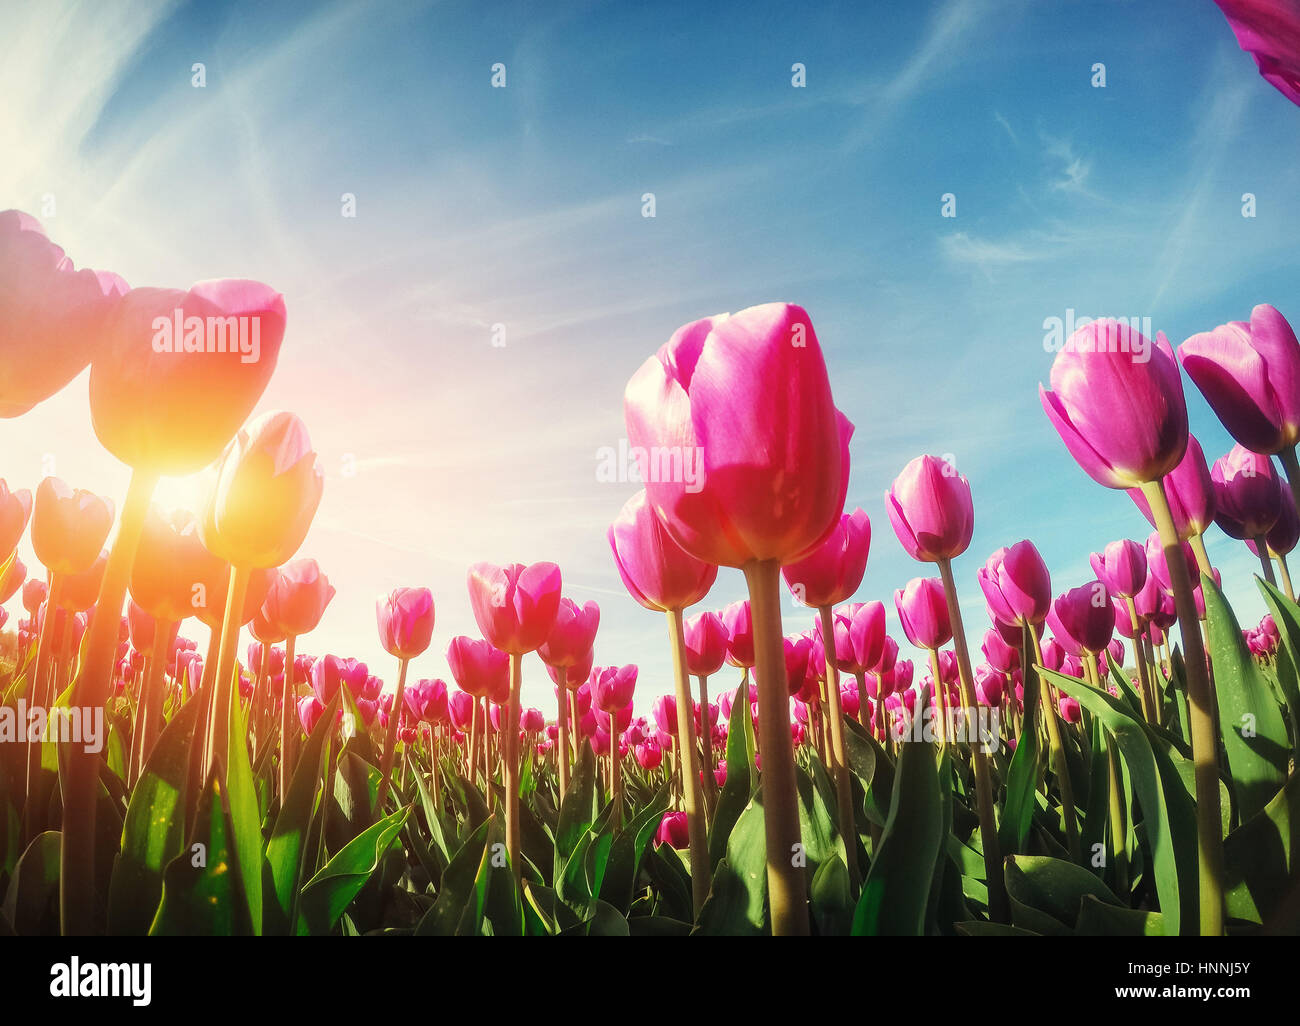 sunlight through red tulips field. Beauty world. Europe - Stock Image